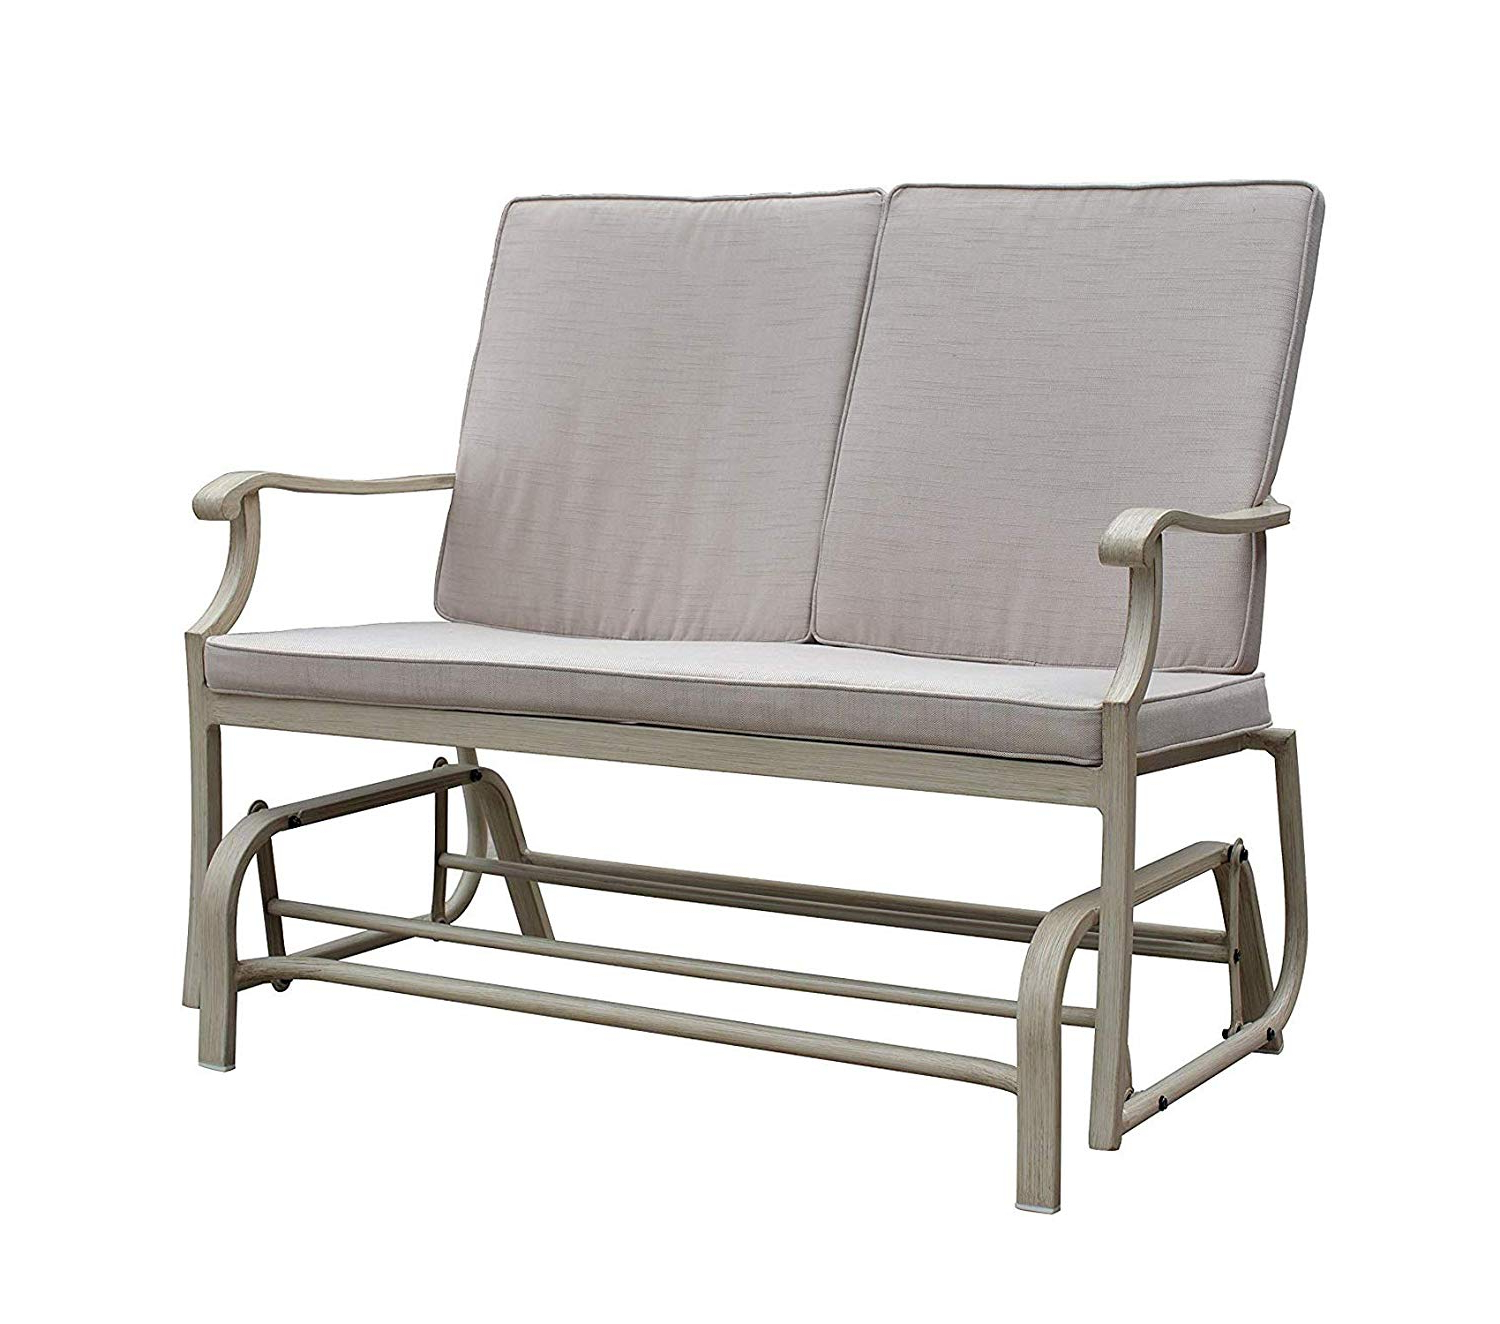 Most Up To Date Aluminum Outdoor Double Glider Benches Within Amazon: Wood & Style Patio Outdoor Garden Premium Camel (View 22 of 30)